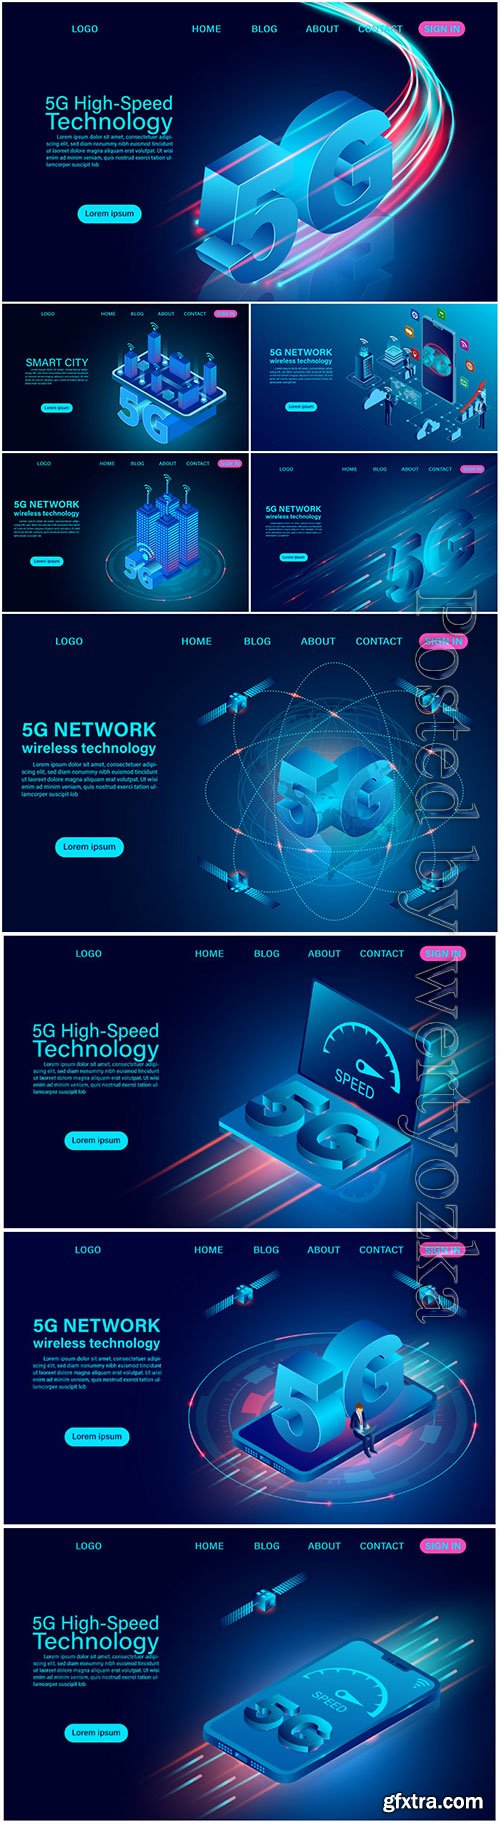 5G network wireless technology high speed isometric flat design vector